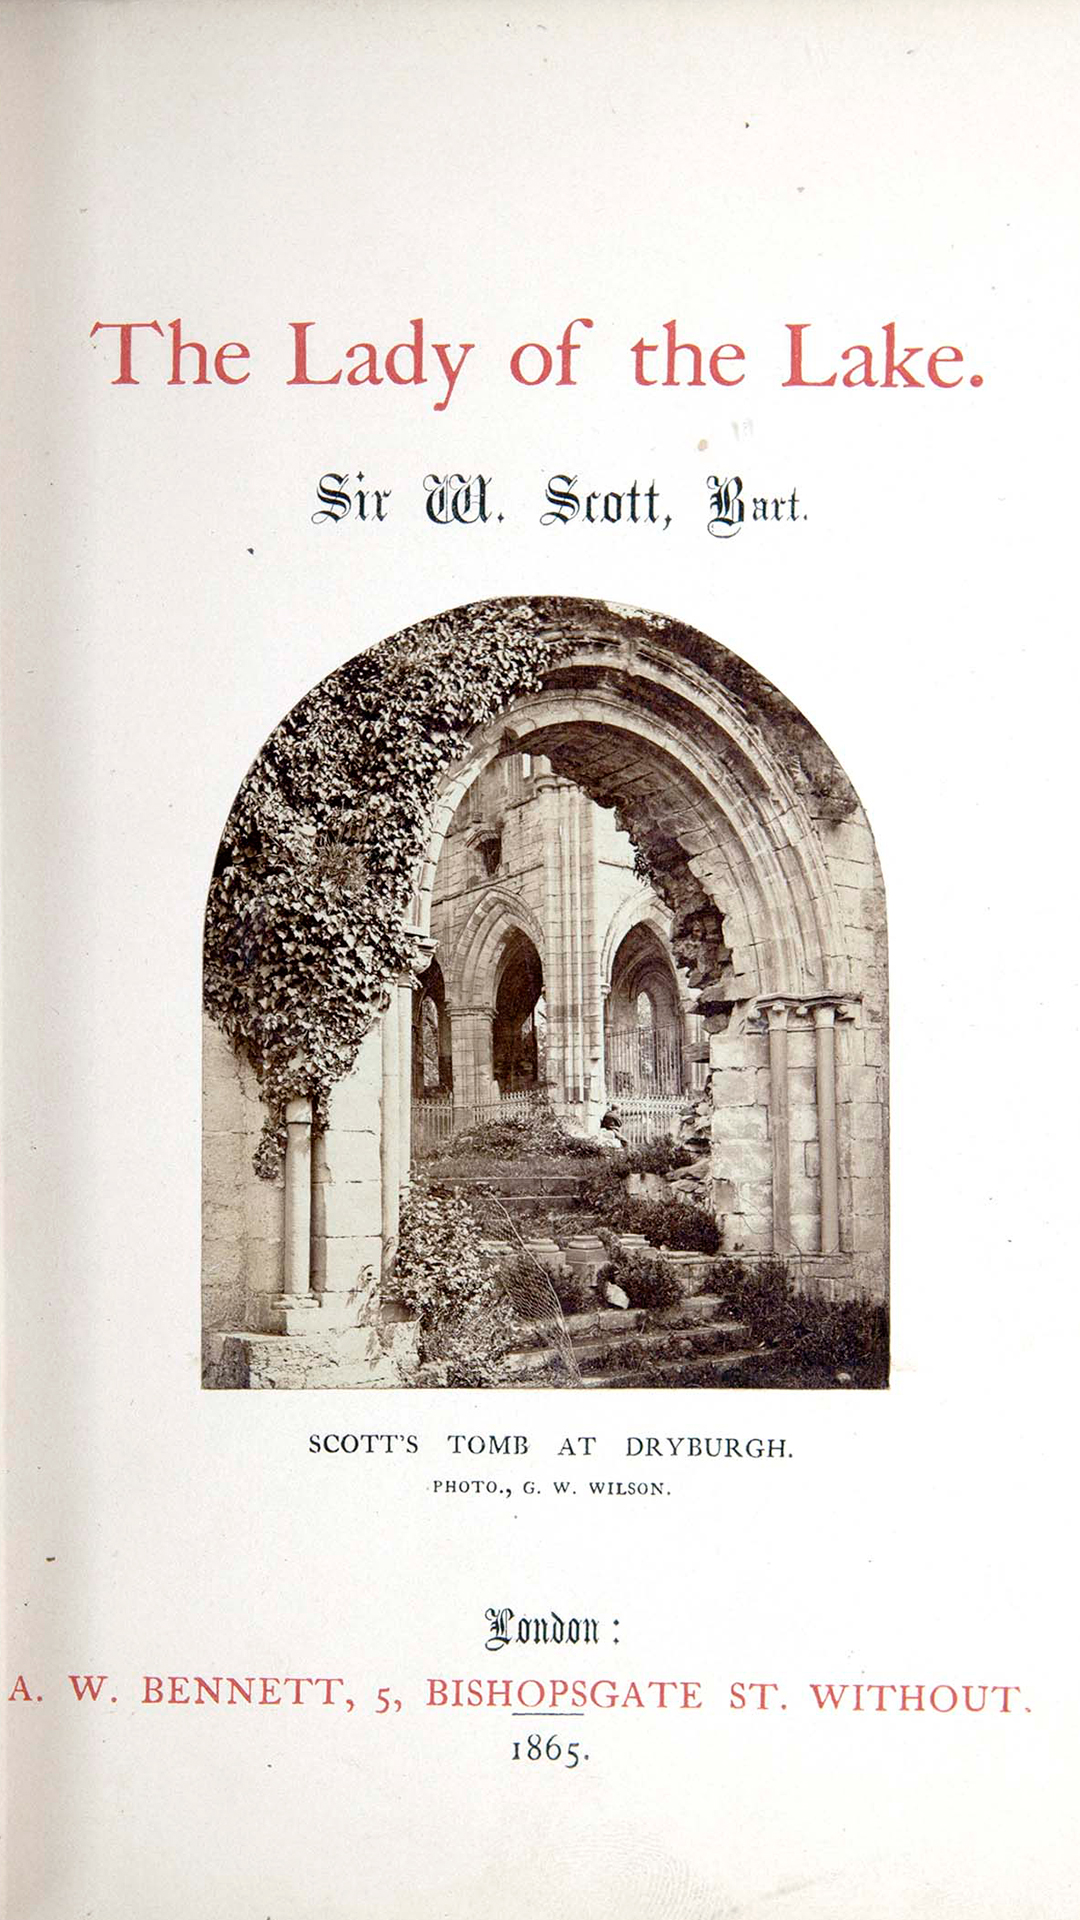 Photo of Scott's tomb at Dryburgh from The Lady of the Lake by Sir Walter Scott